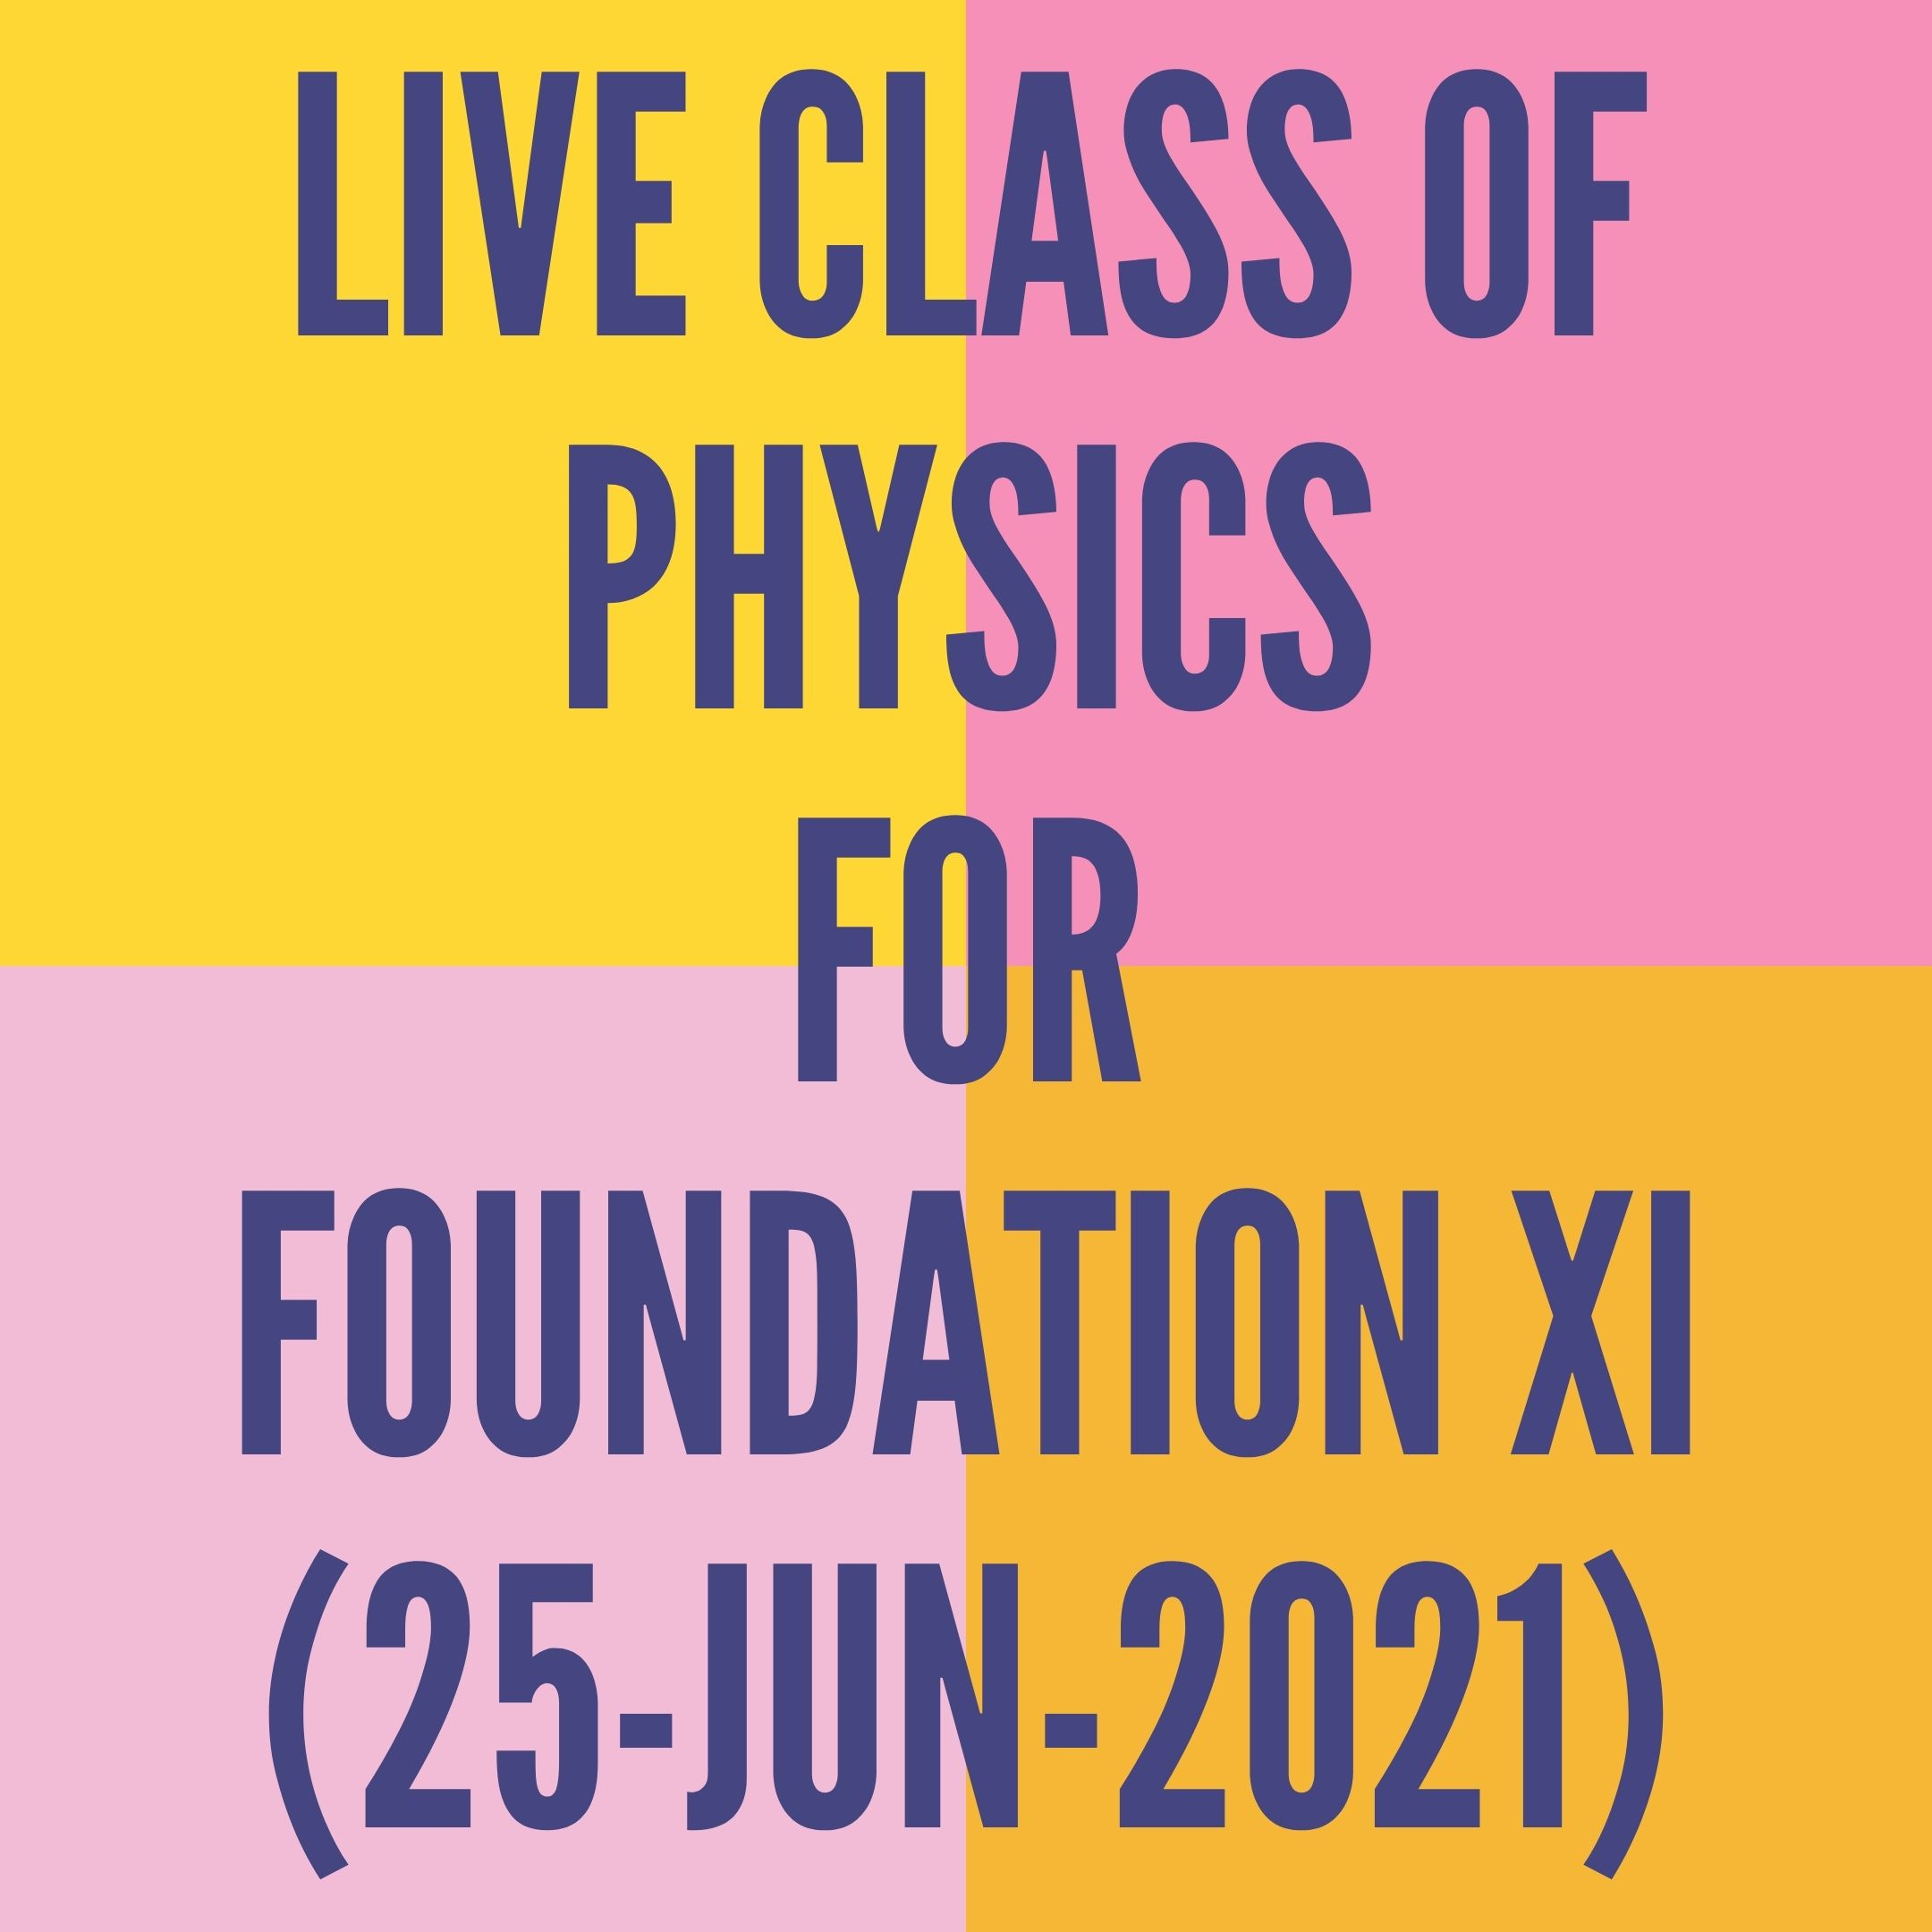 LIVE CLASS OF PHYSICS FOR FOUNDATION XI (25-JUN-2021) APPLIED MATHS